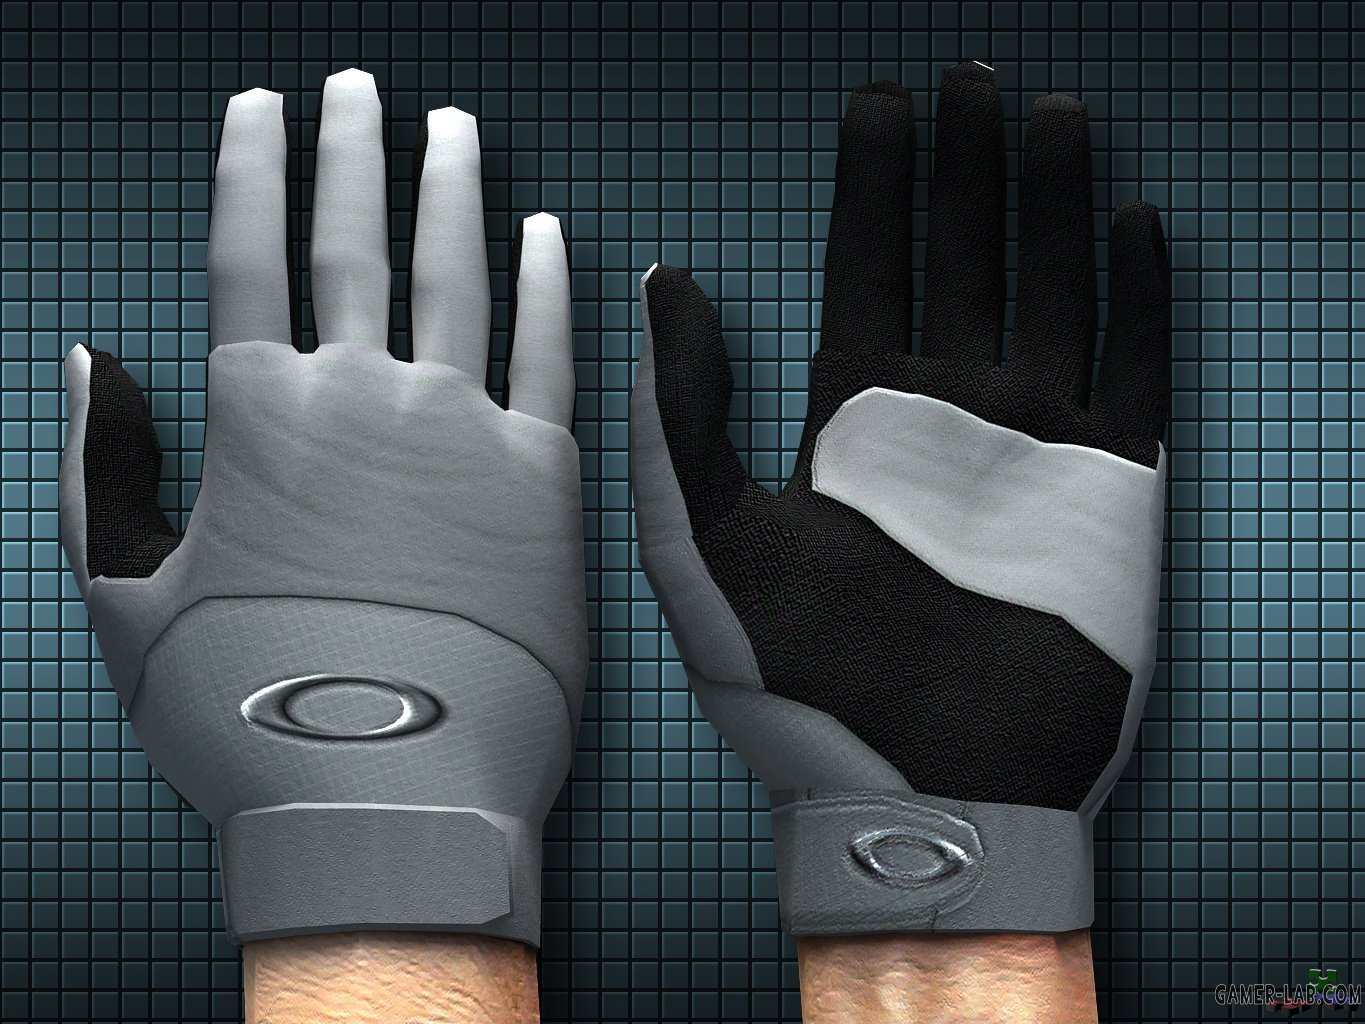 Oakley_Standard_Issue_Assault_Gloves